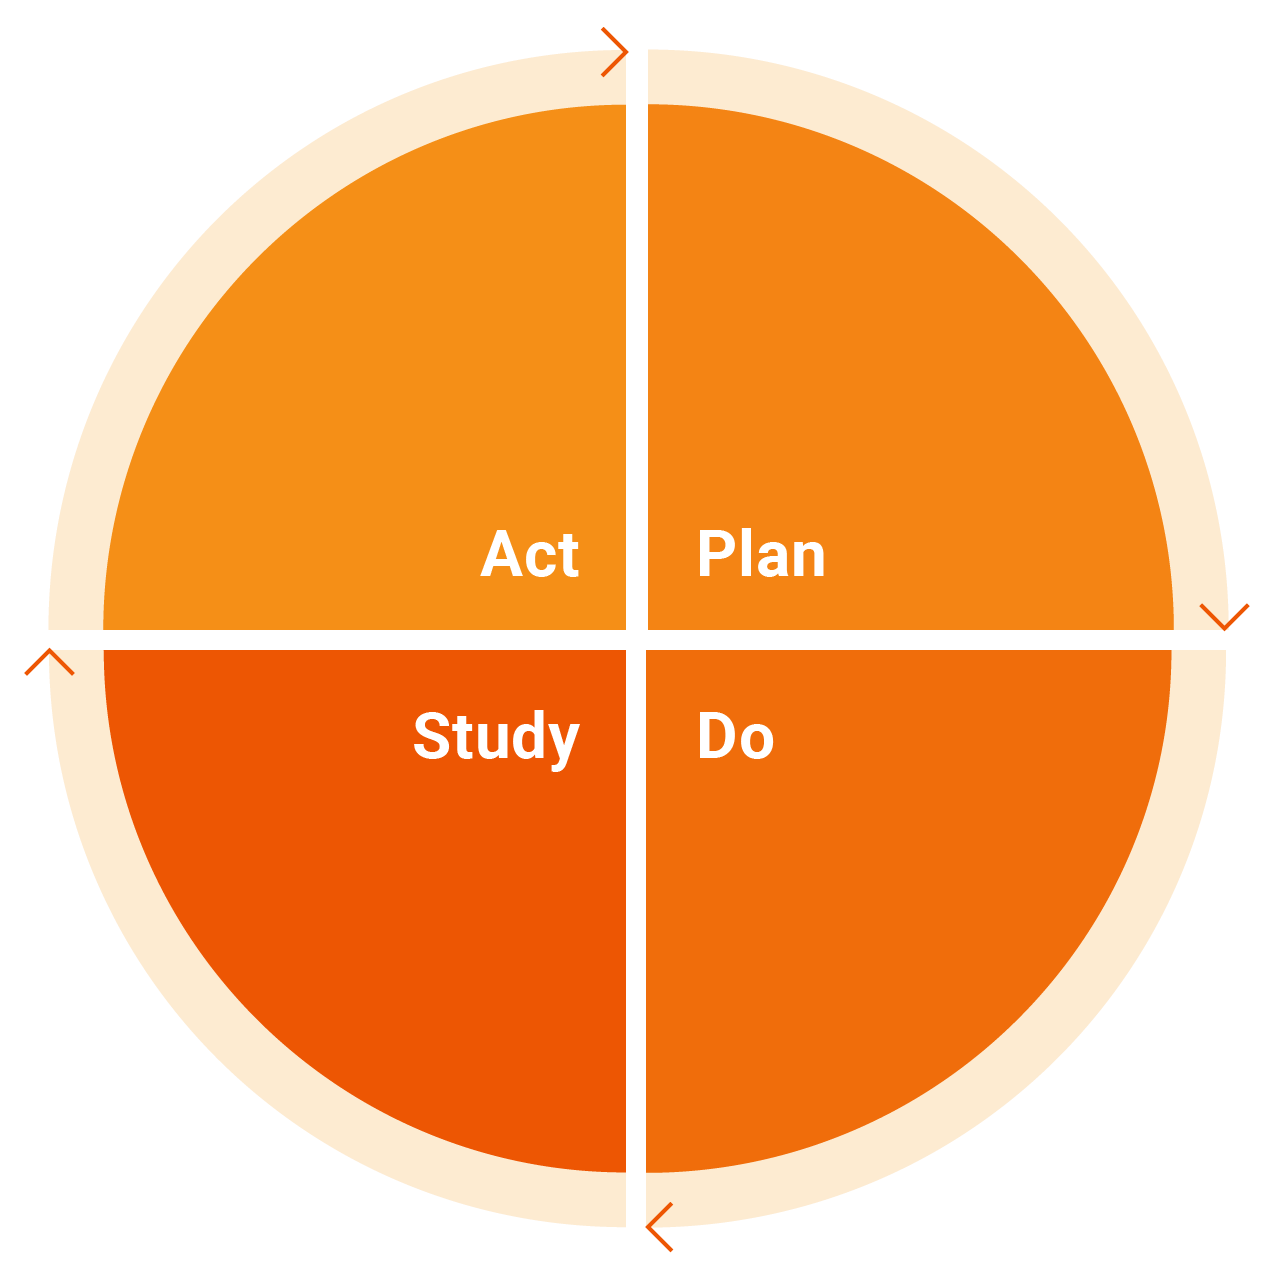 Implementation_plan-do-study-act